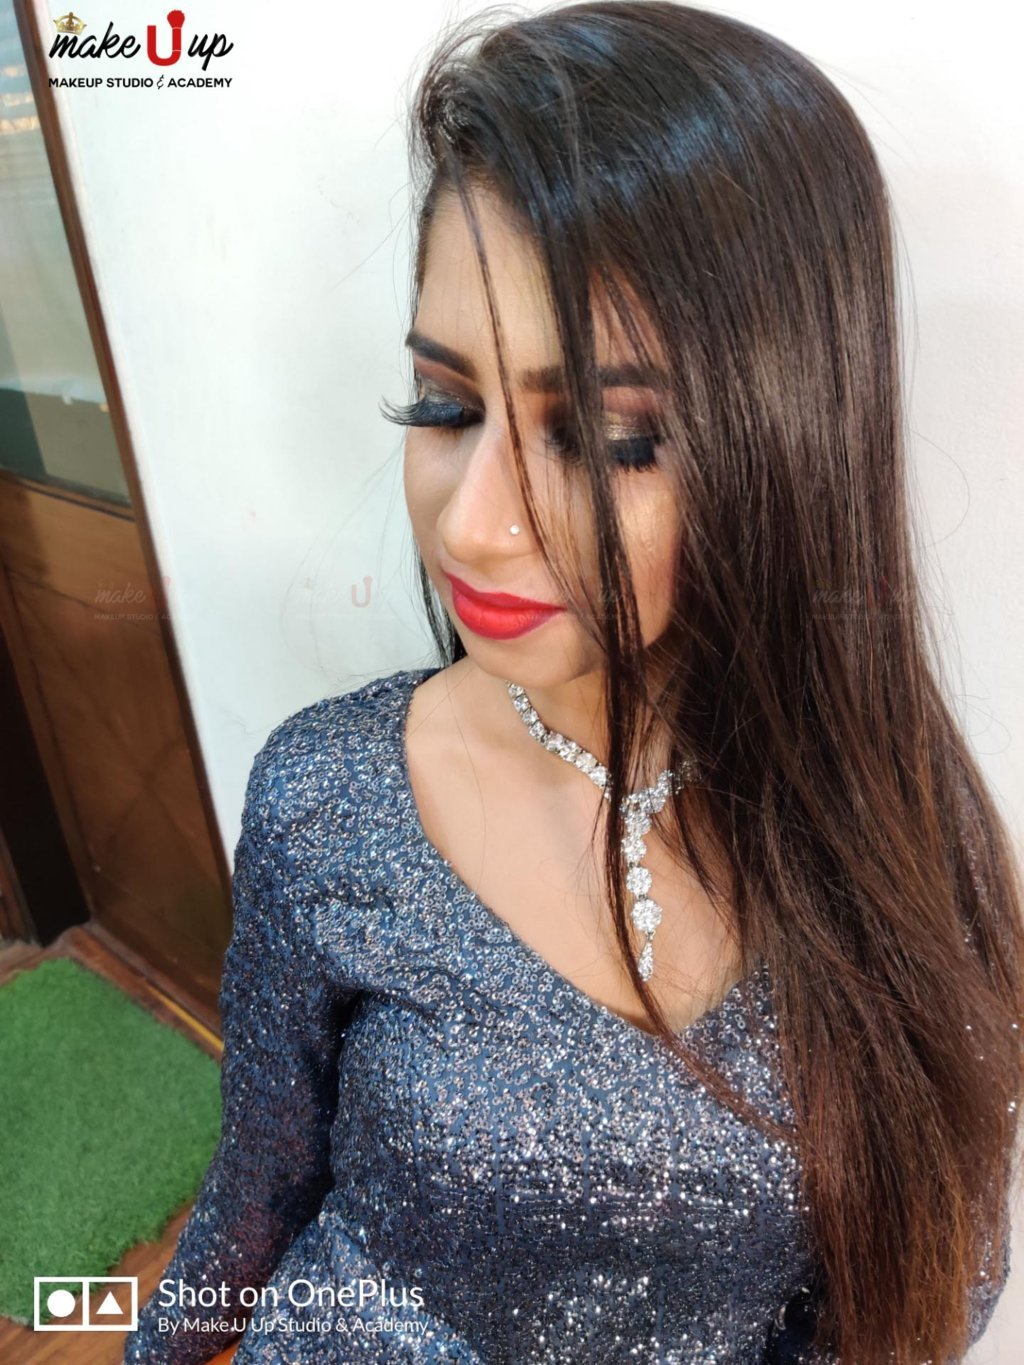 simple makeup and hairstyle for party